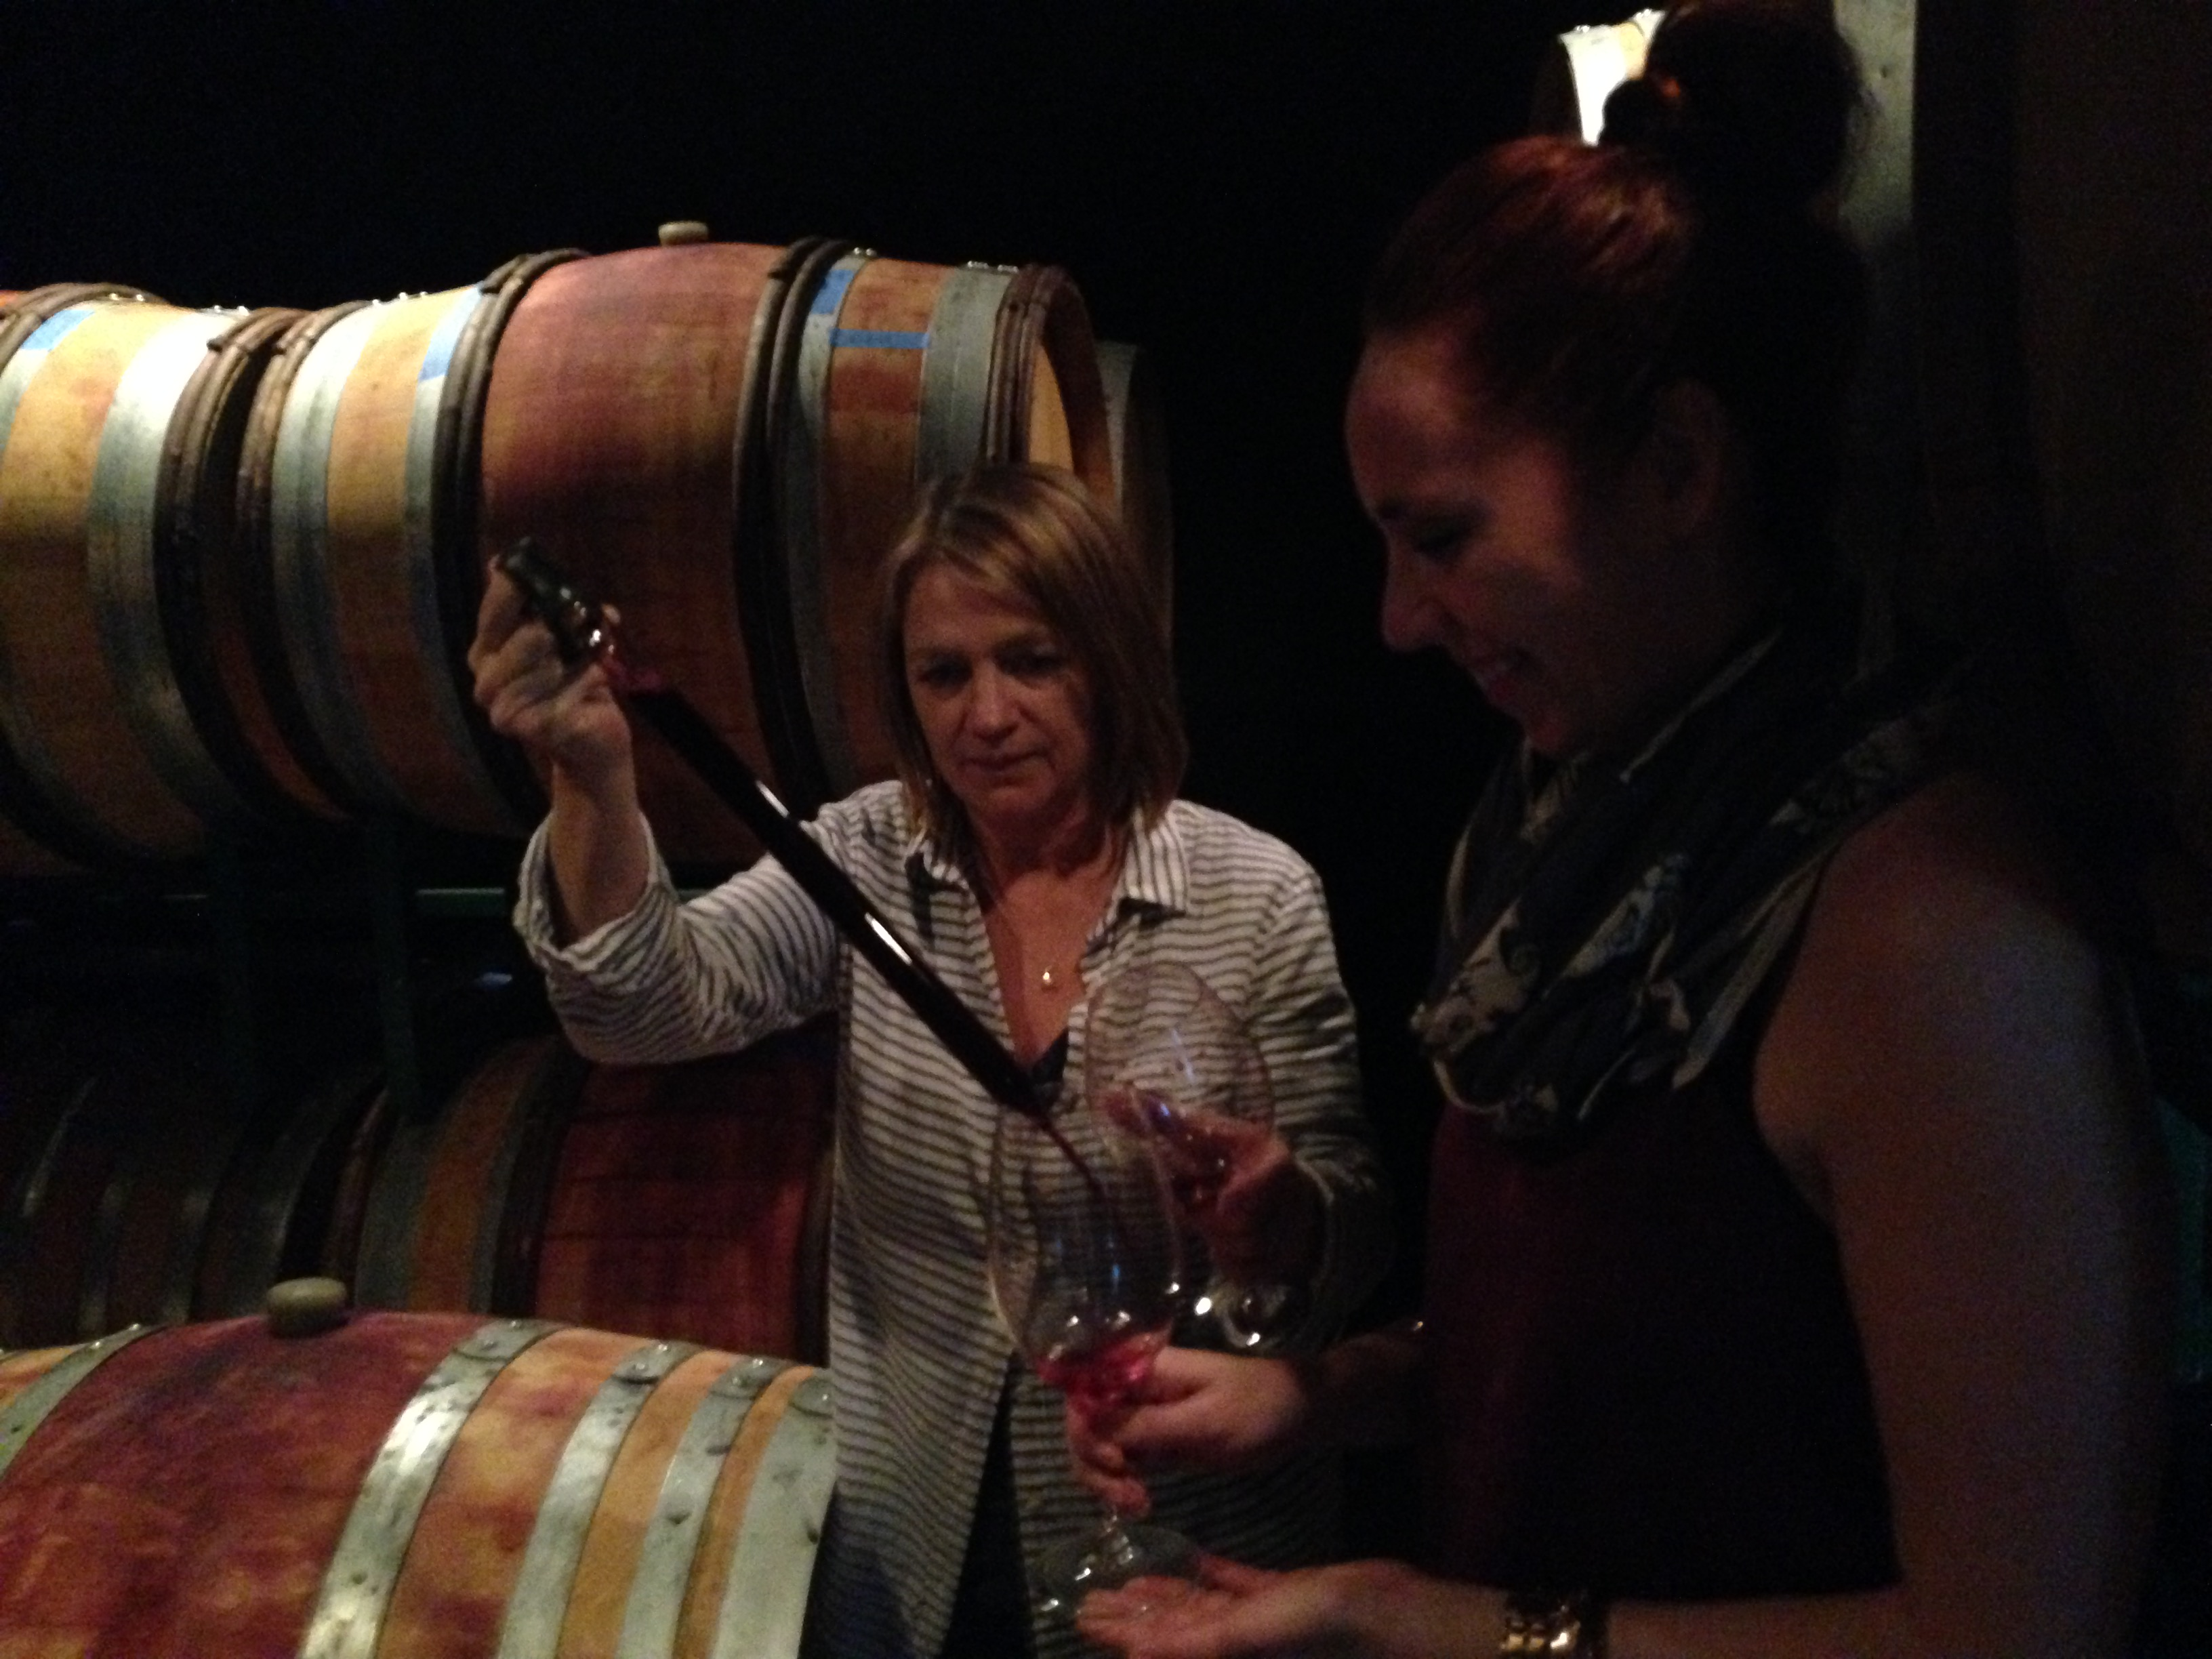 Straight from the Barrel with Hilarie at Harrison Clarke